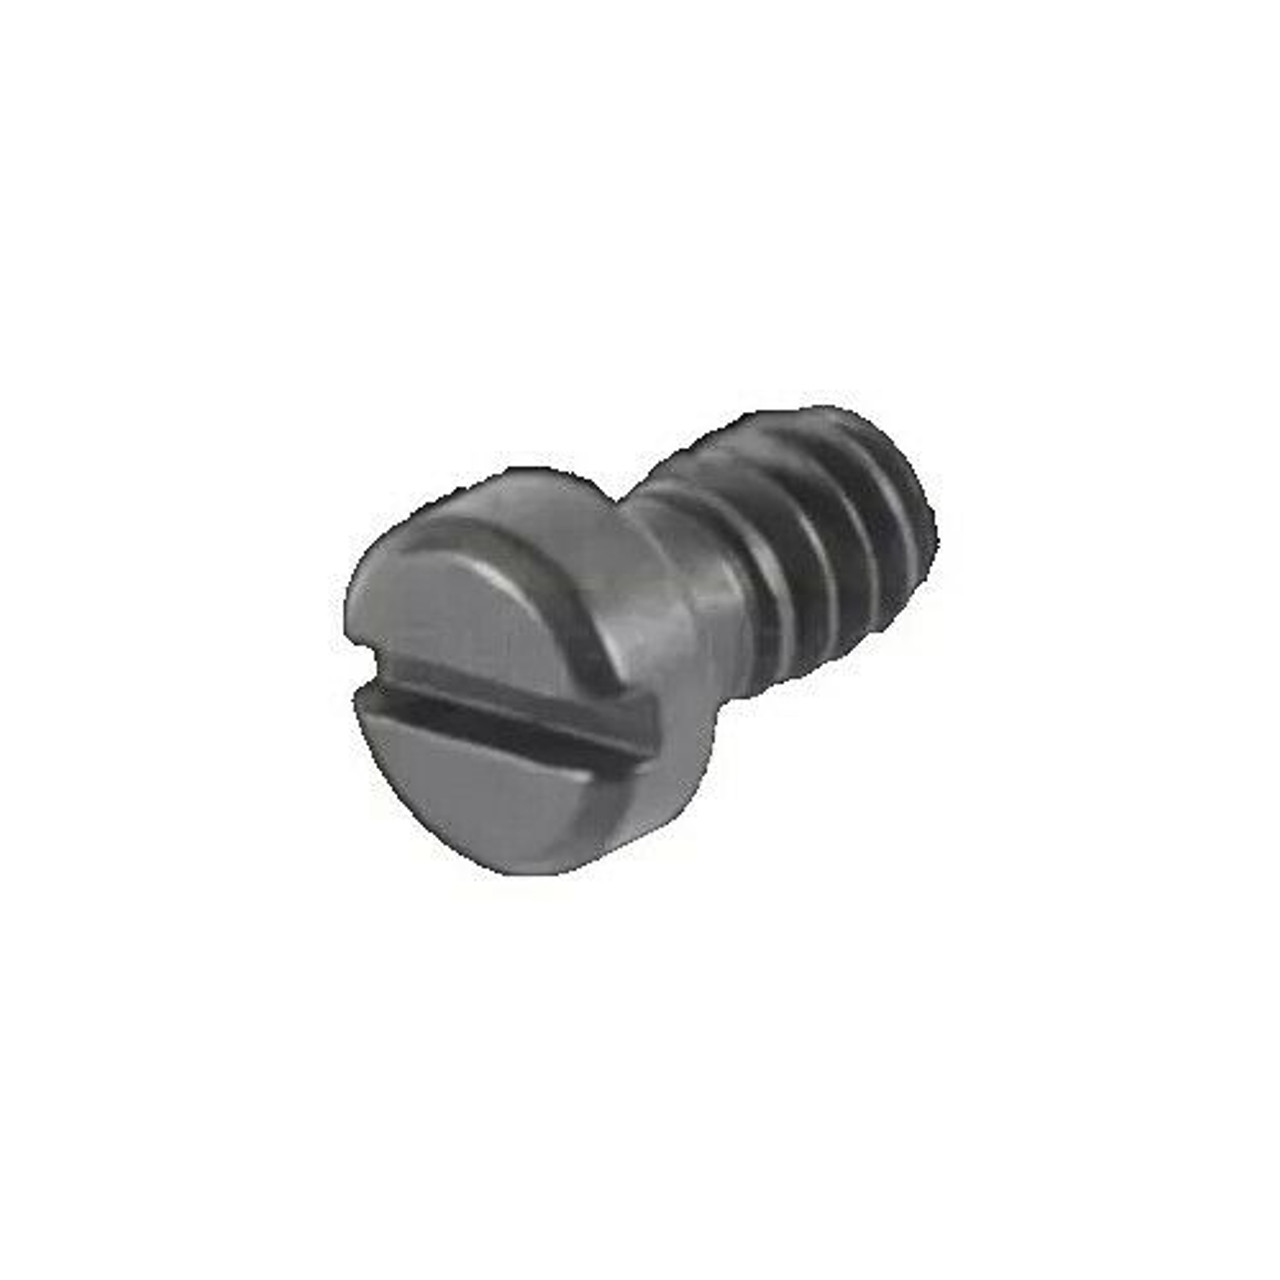 Purge Screw and O-Ring for Night Vision PVS-7, PVS-14, 6015, A3144315 & A3144316